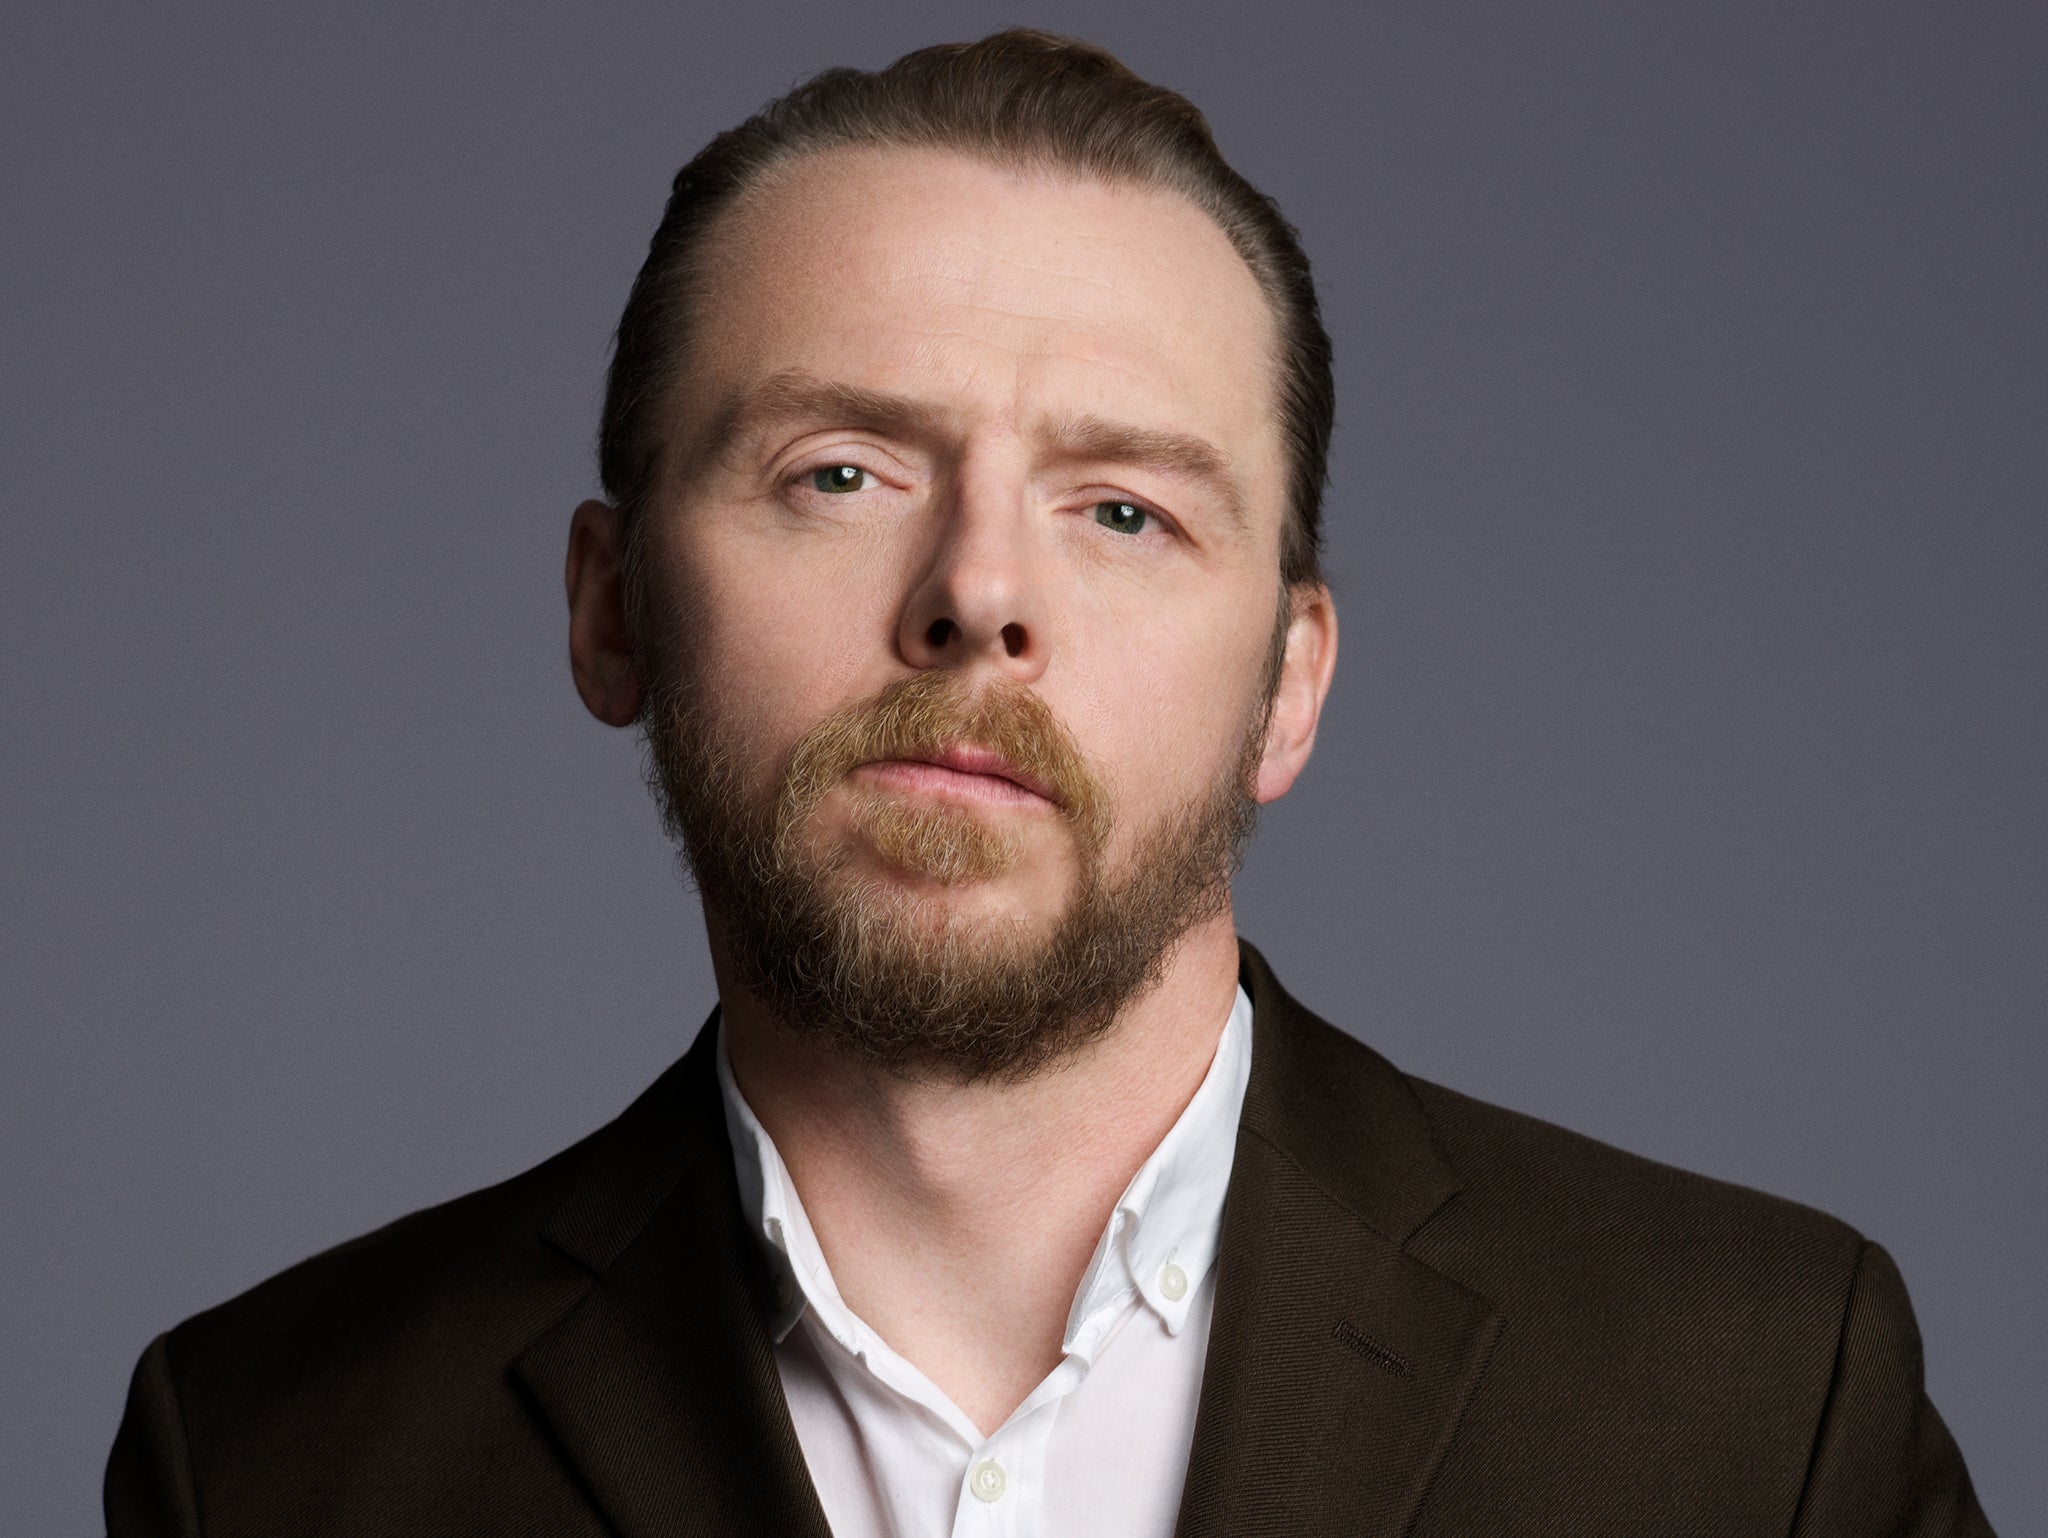 http://static.independent.co.uk/s3fs-public/thumbnails/image/2015/07/24/11/Simon-Pegg.jpg